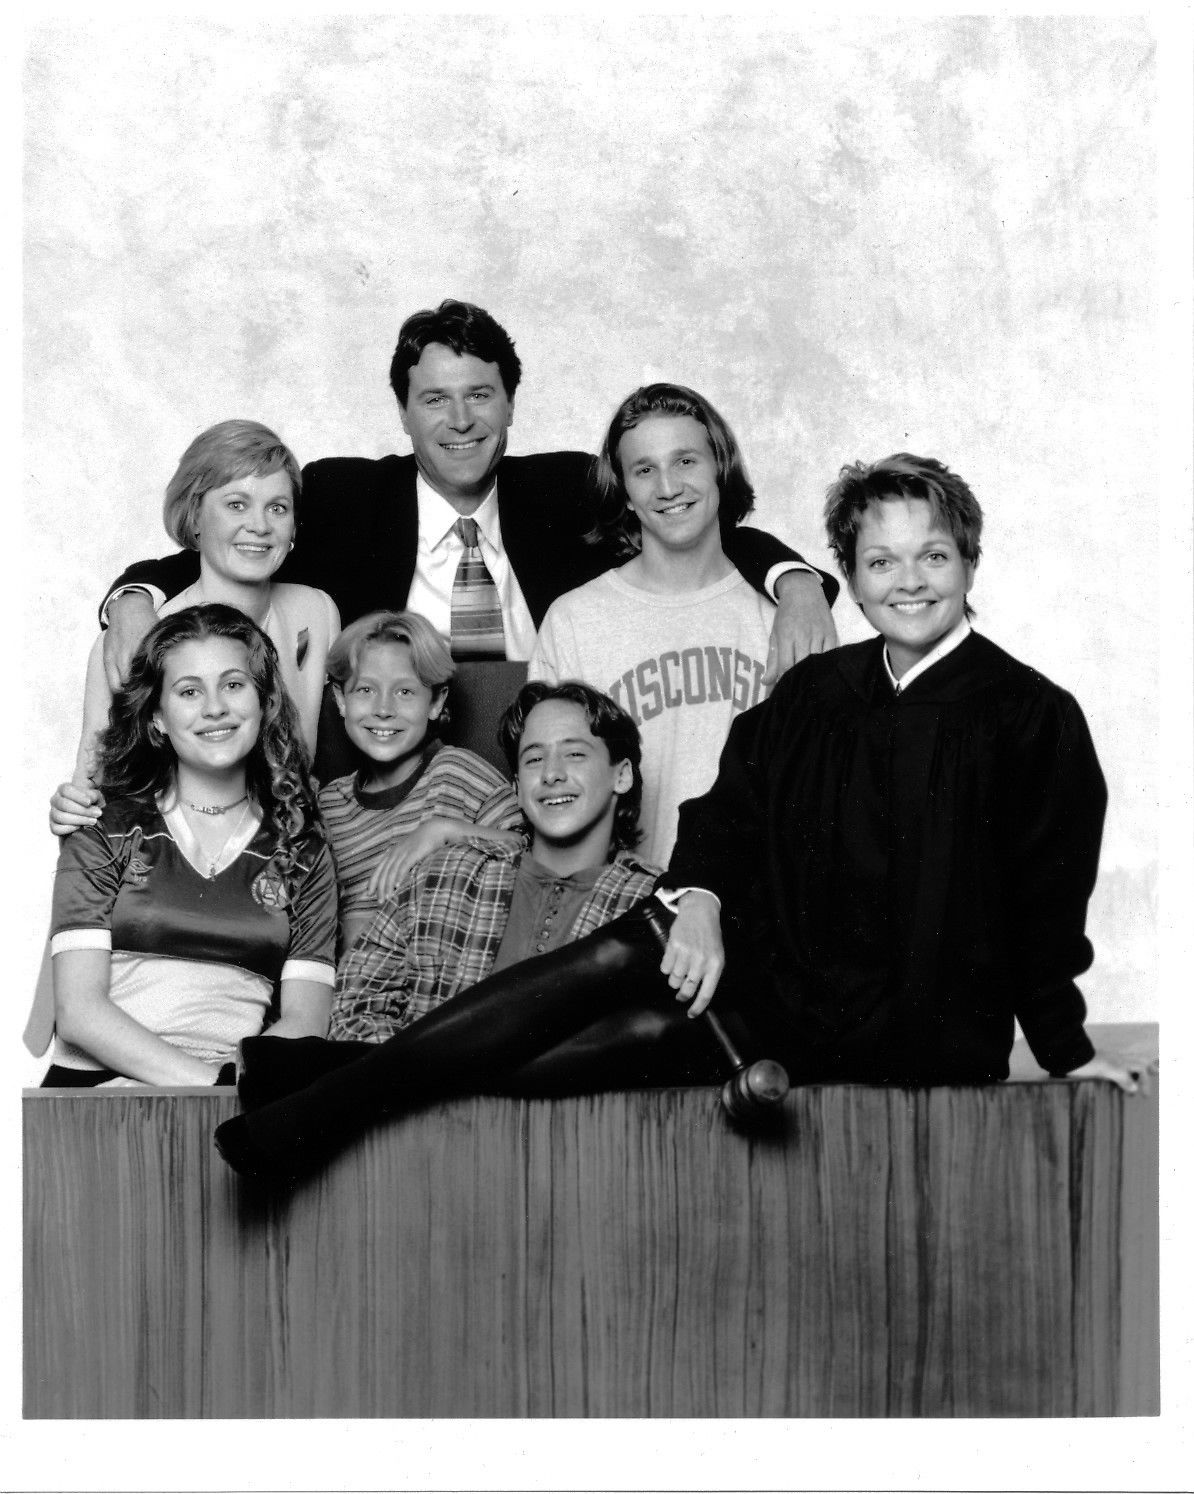 Pamela_Reed_Home_Court_Original_8x10_glossy_photo_F9674